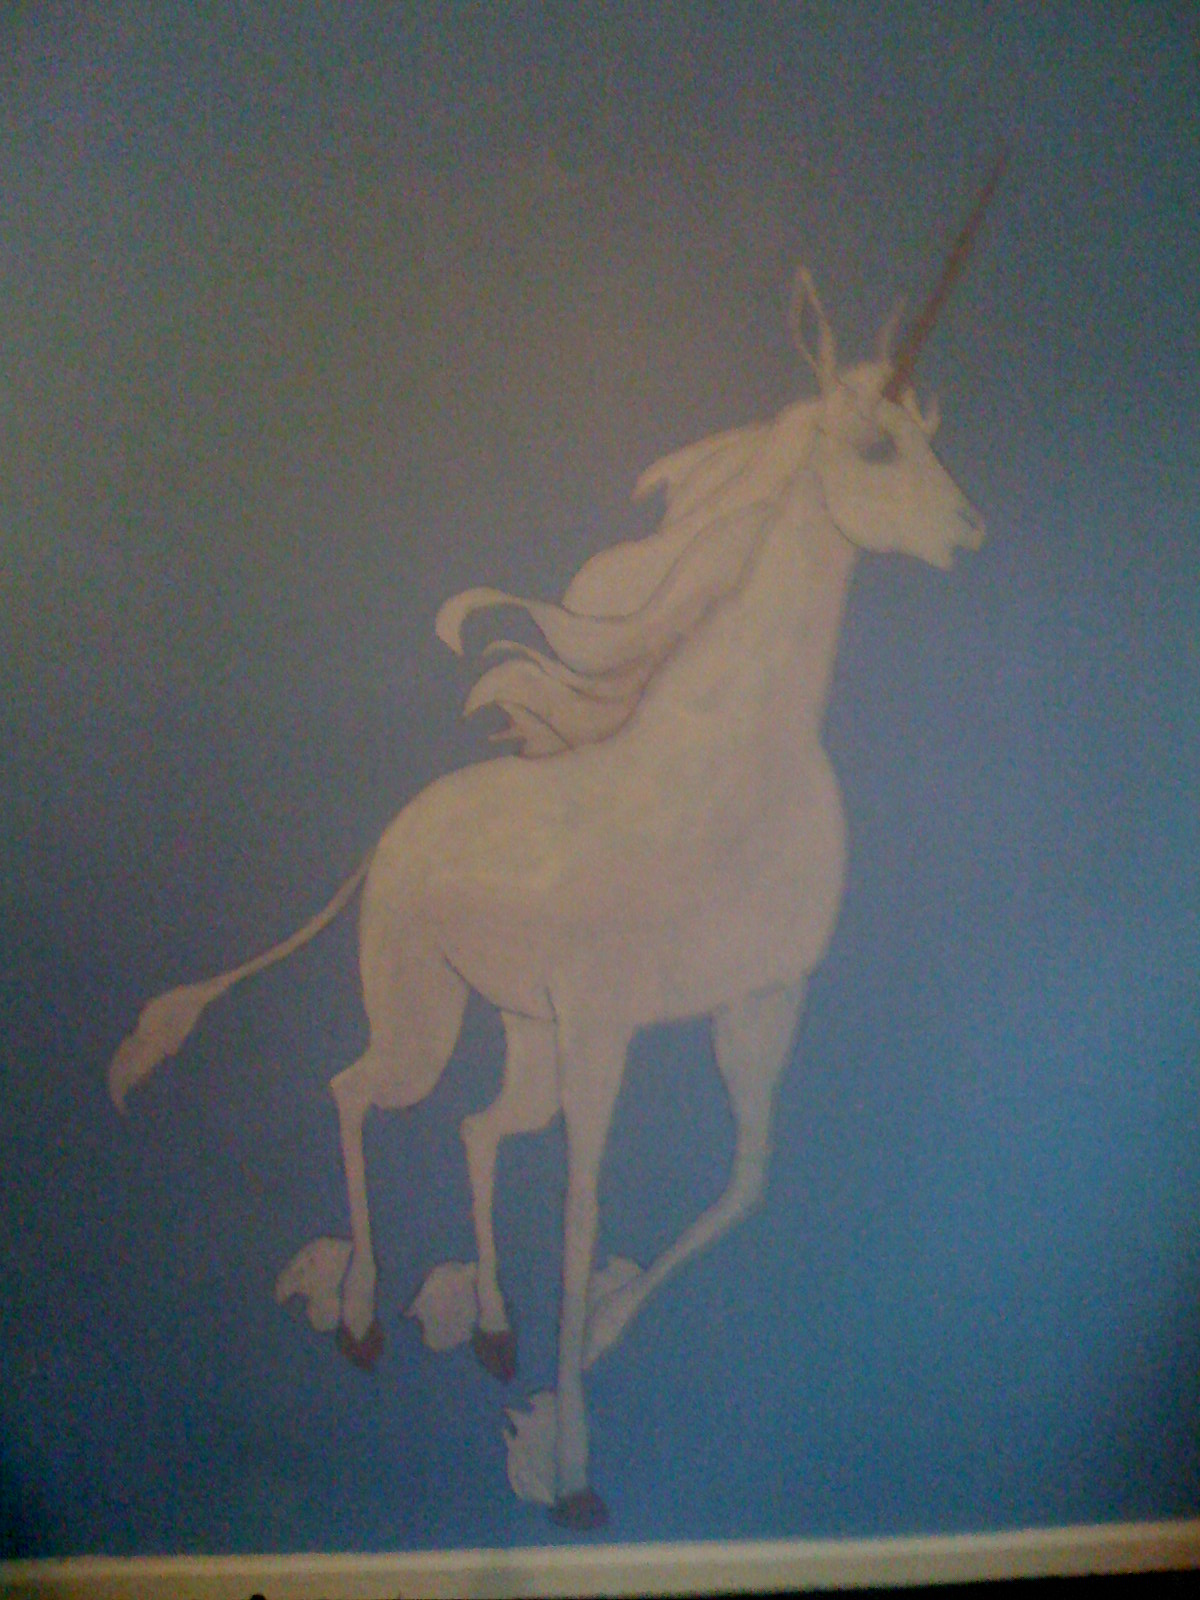 the last unicorn the fictorians when they were no longer babies and we had to paint over the unicorns